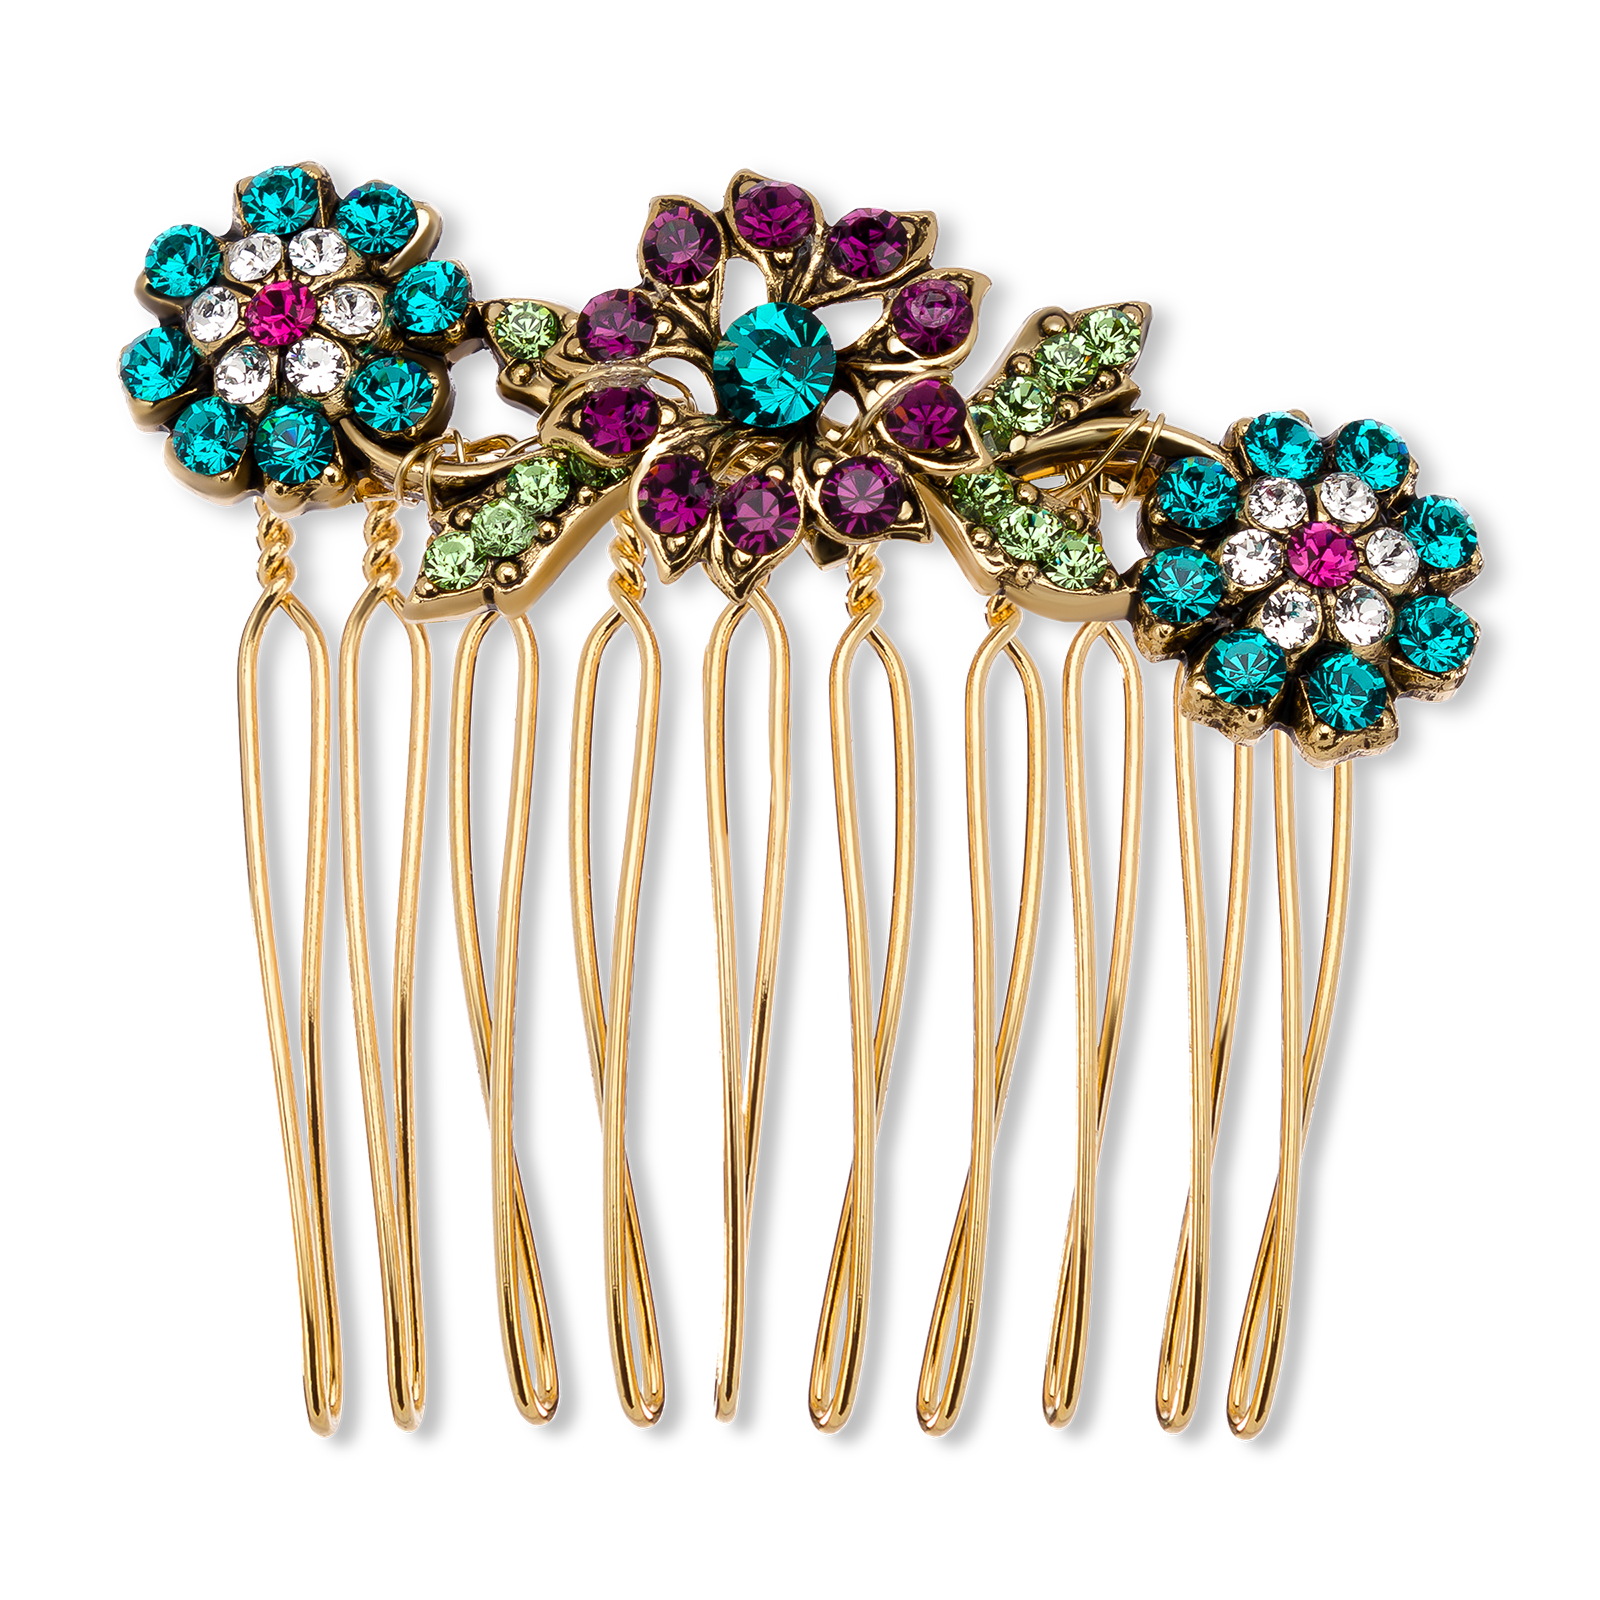 Decorative hair comb product photography